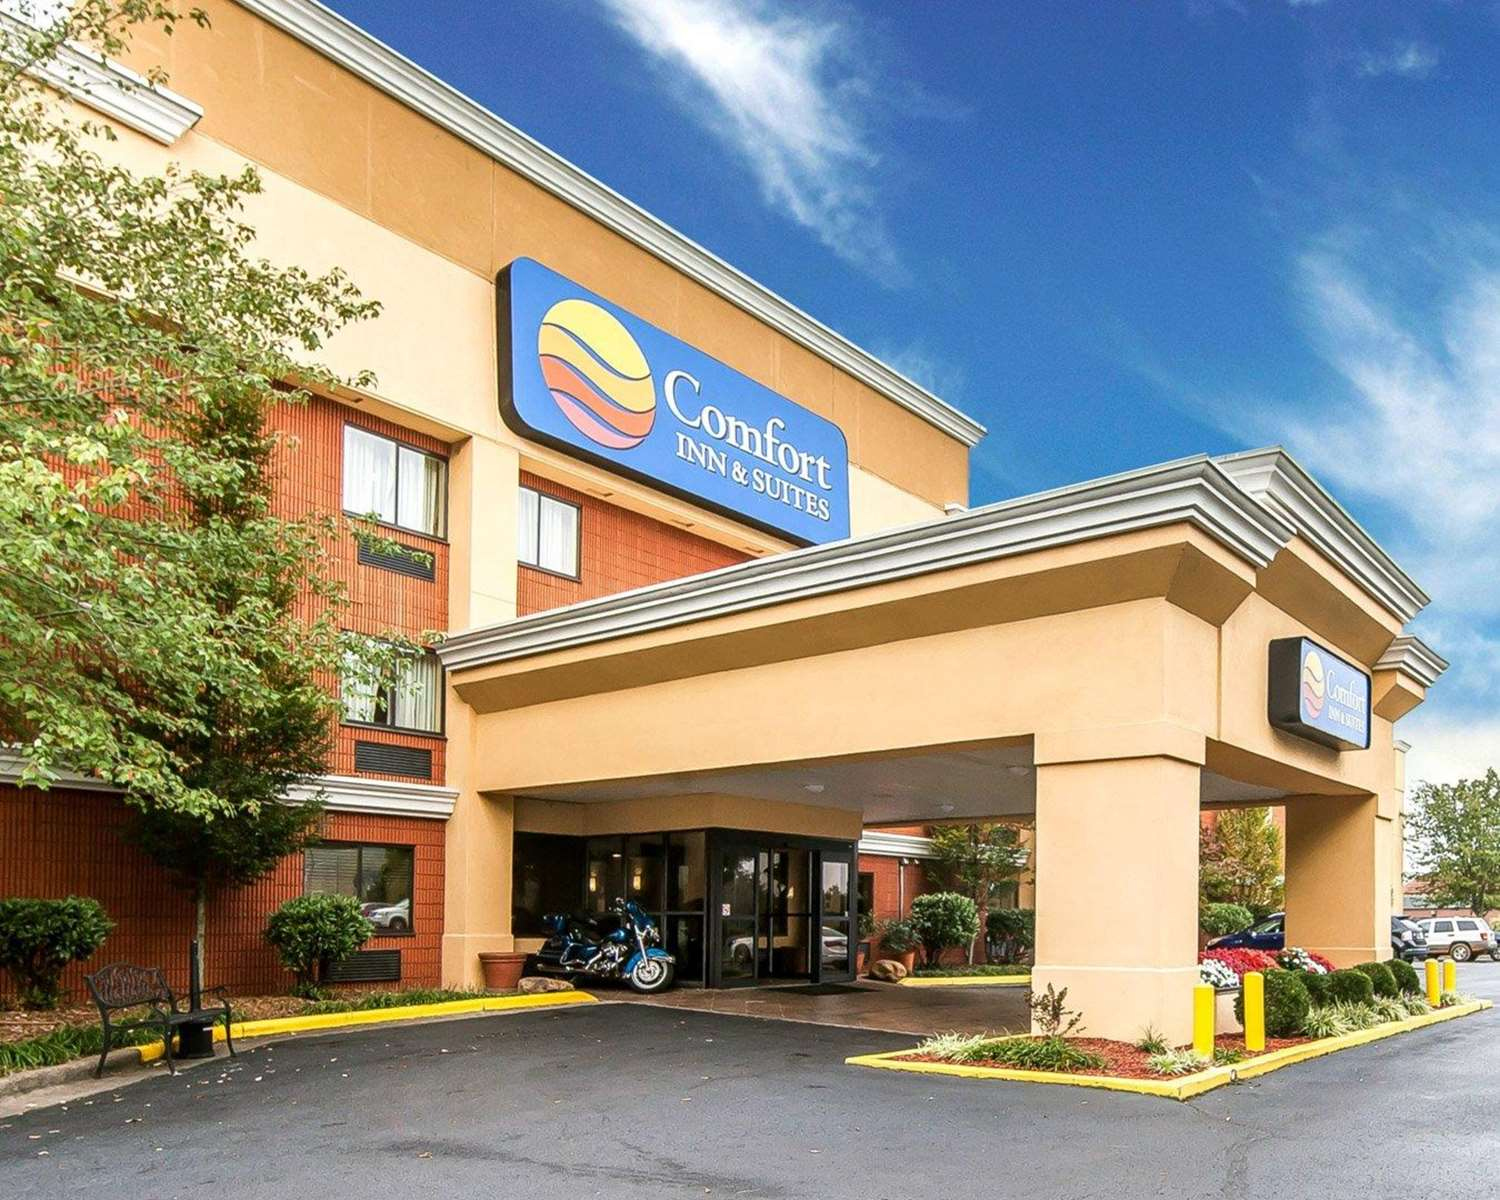 Towneplace suites cleveland tn